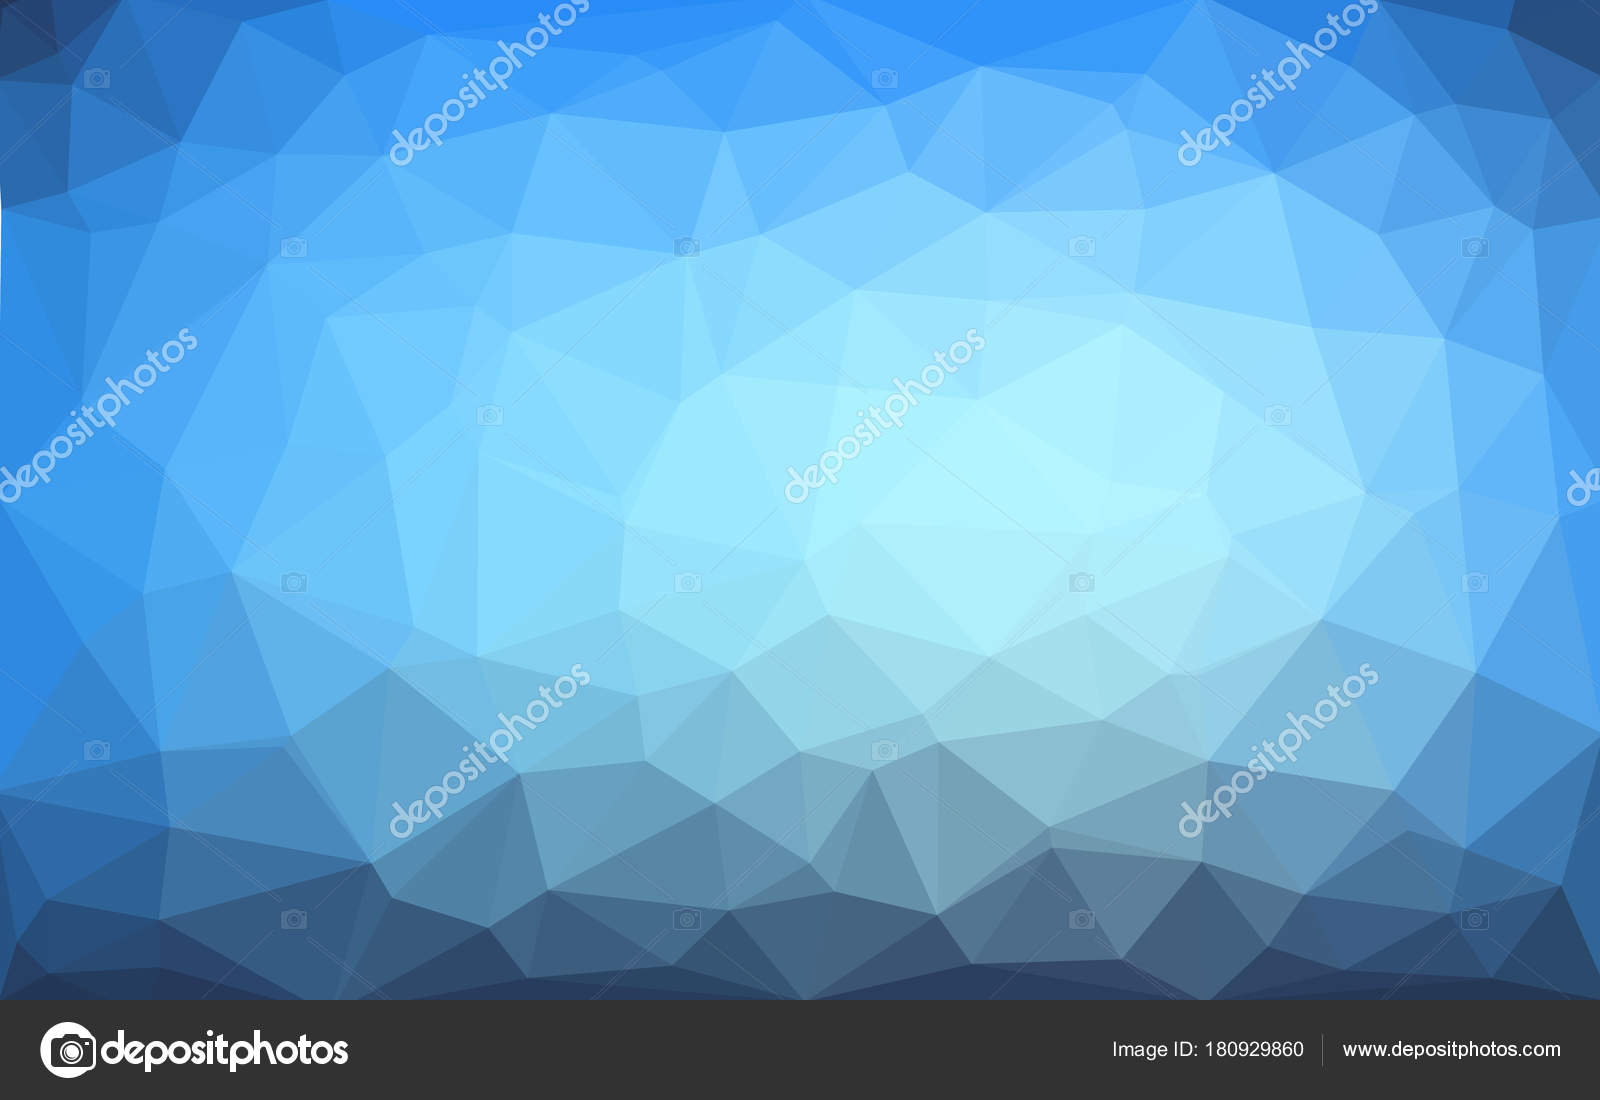 Light blue vector Low poly crystal background. Polygon design pattern. Low  poly illustration background cef99a907